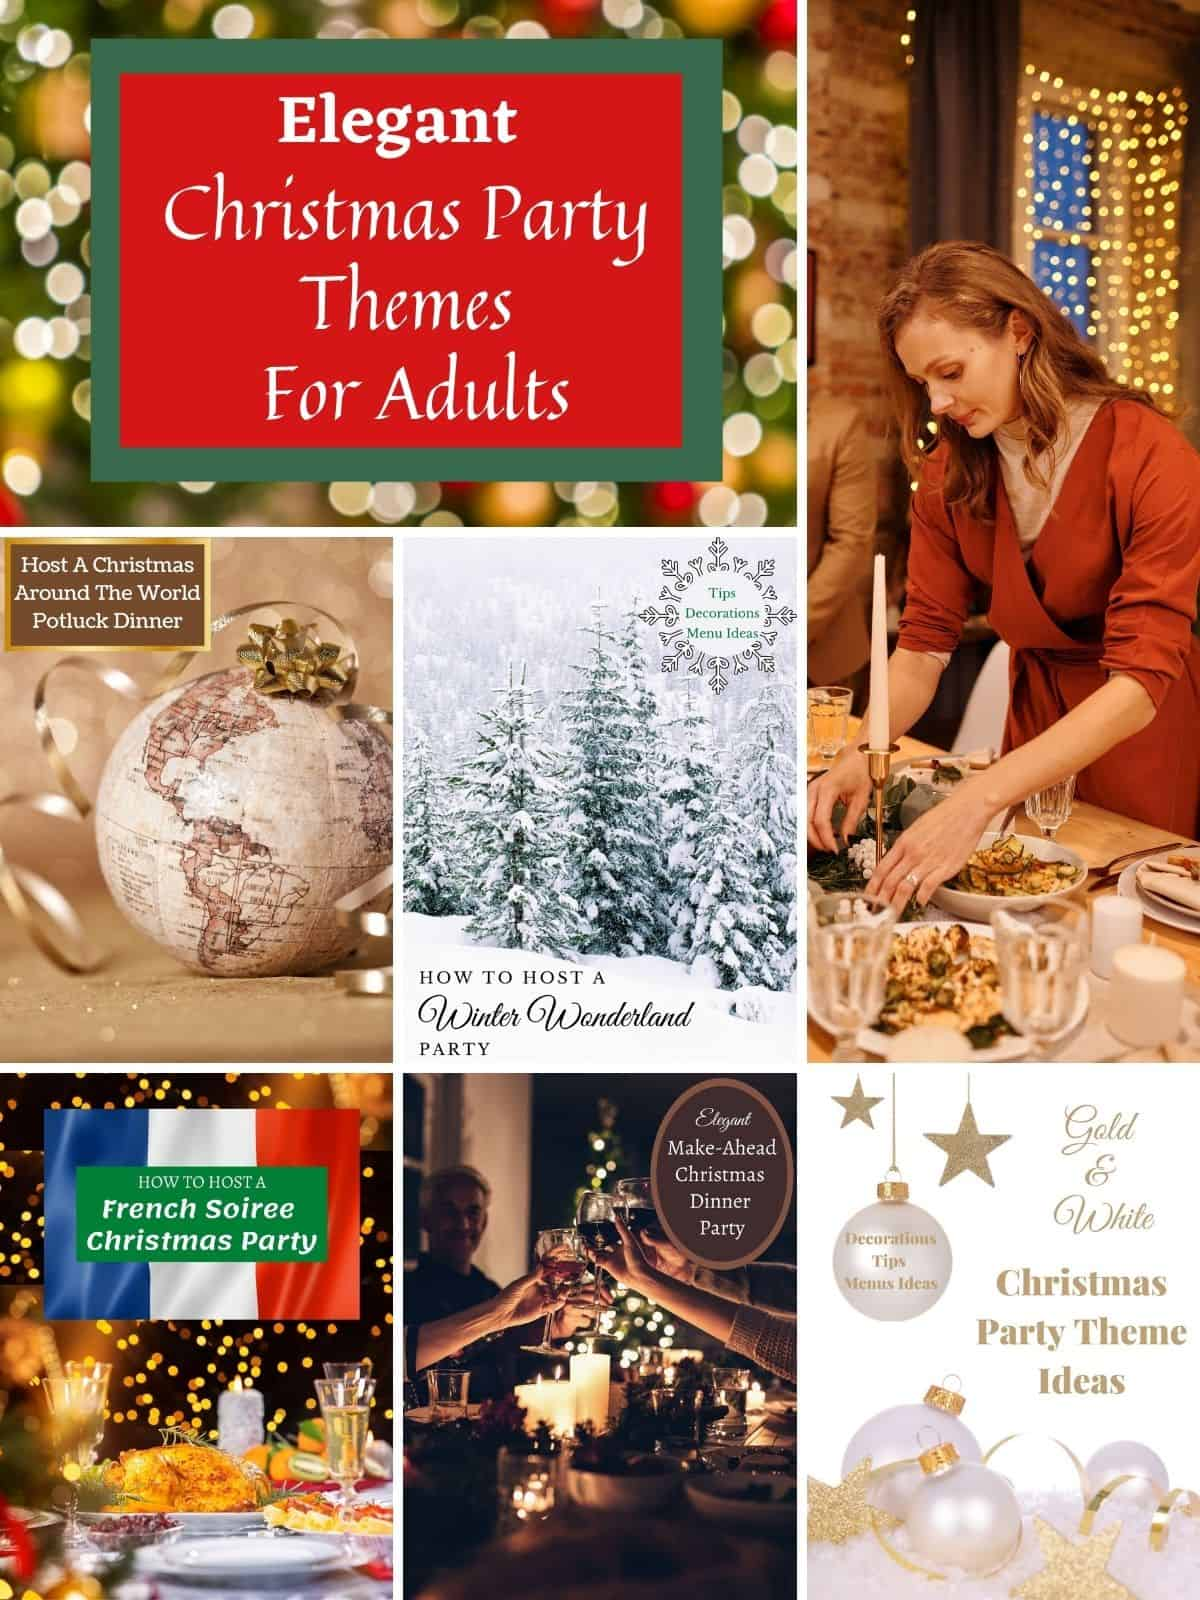 party idea pictures of elegant christmas parties